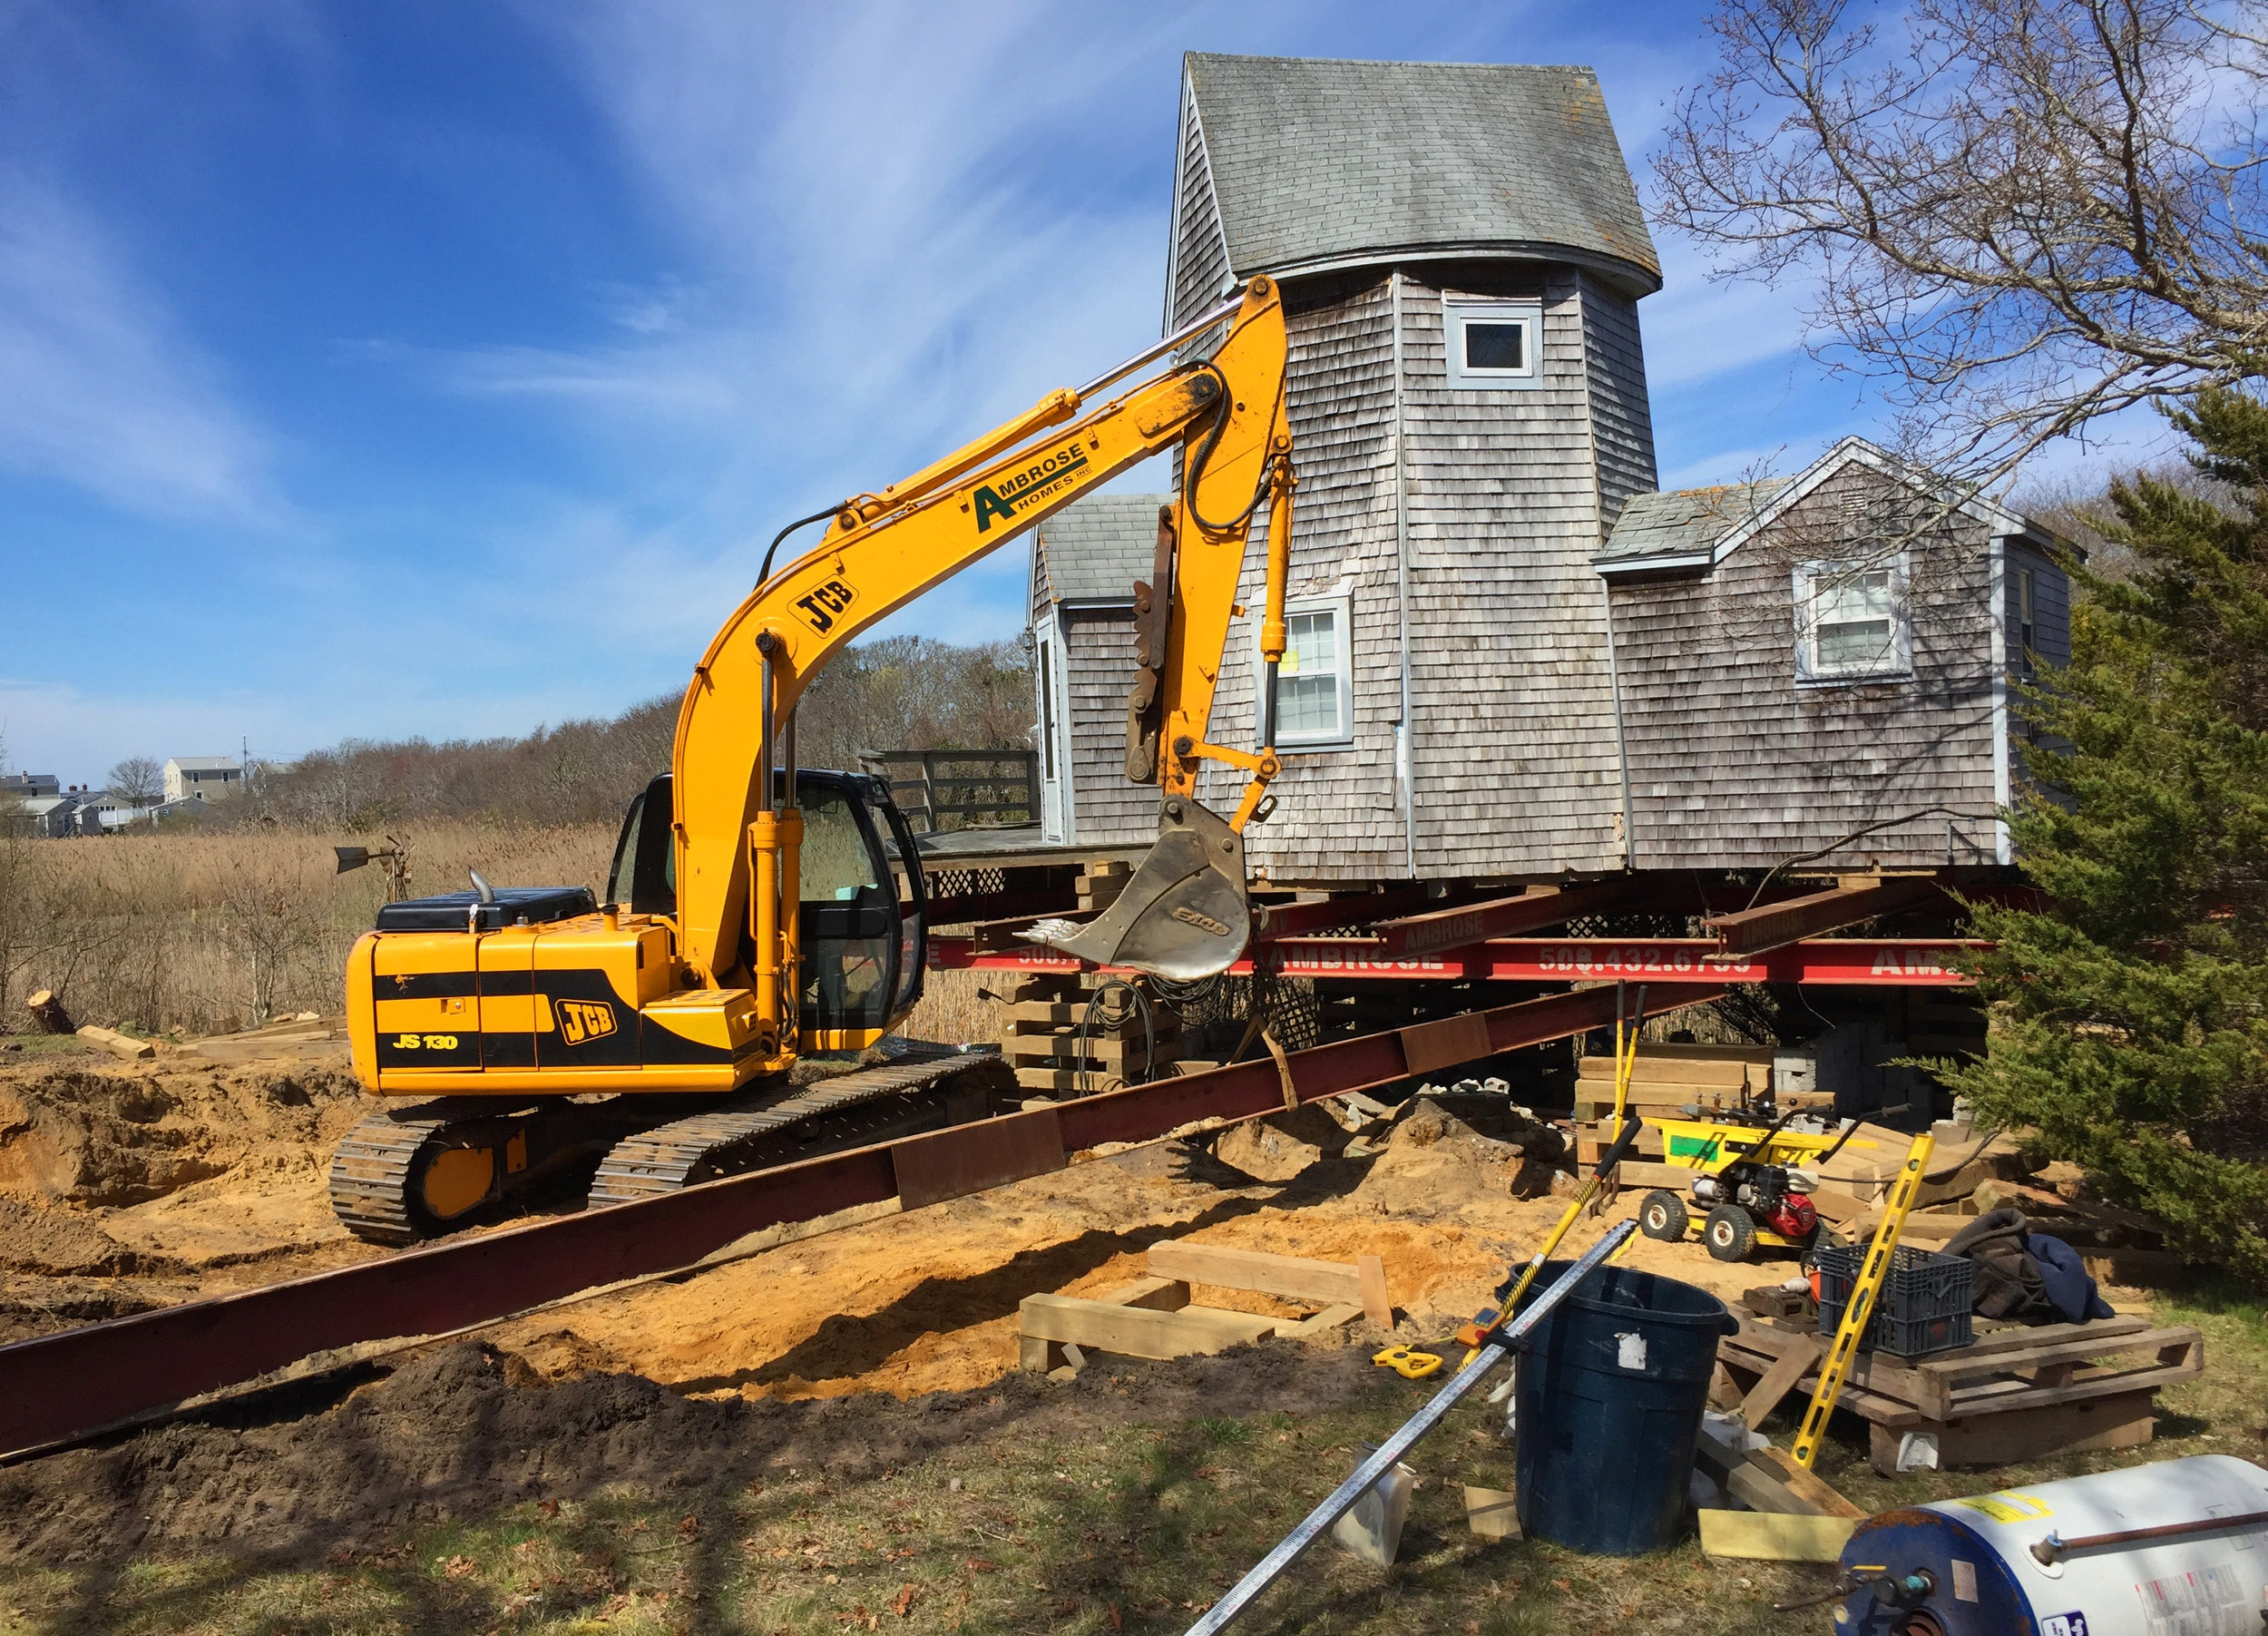 historic home lifted and moved to protect from flood waters